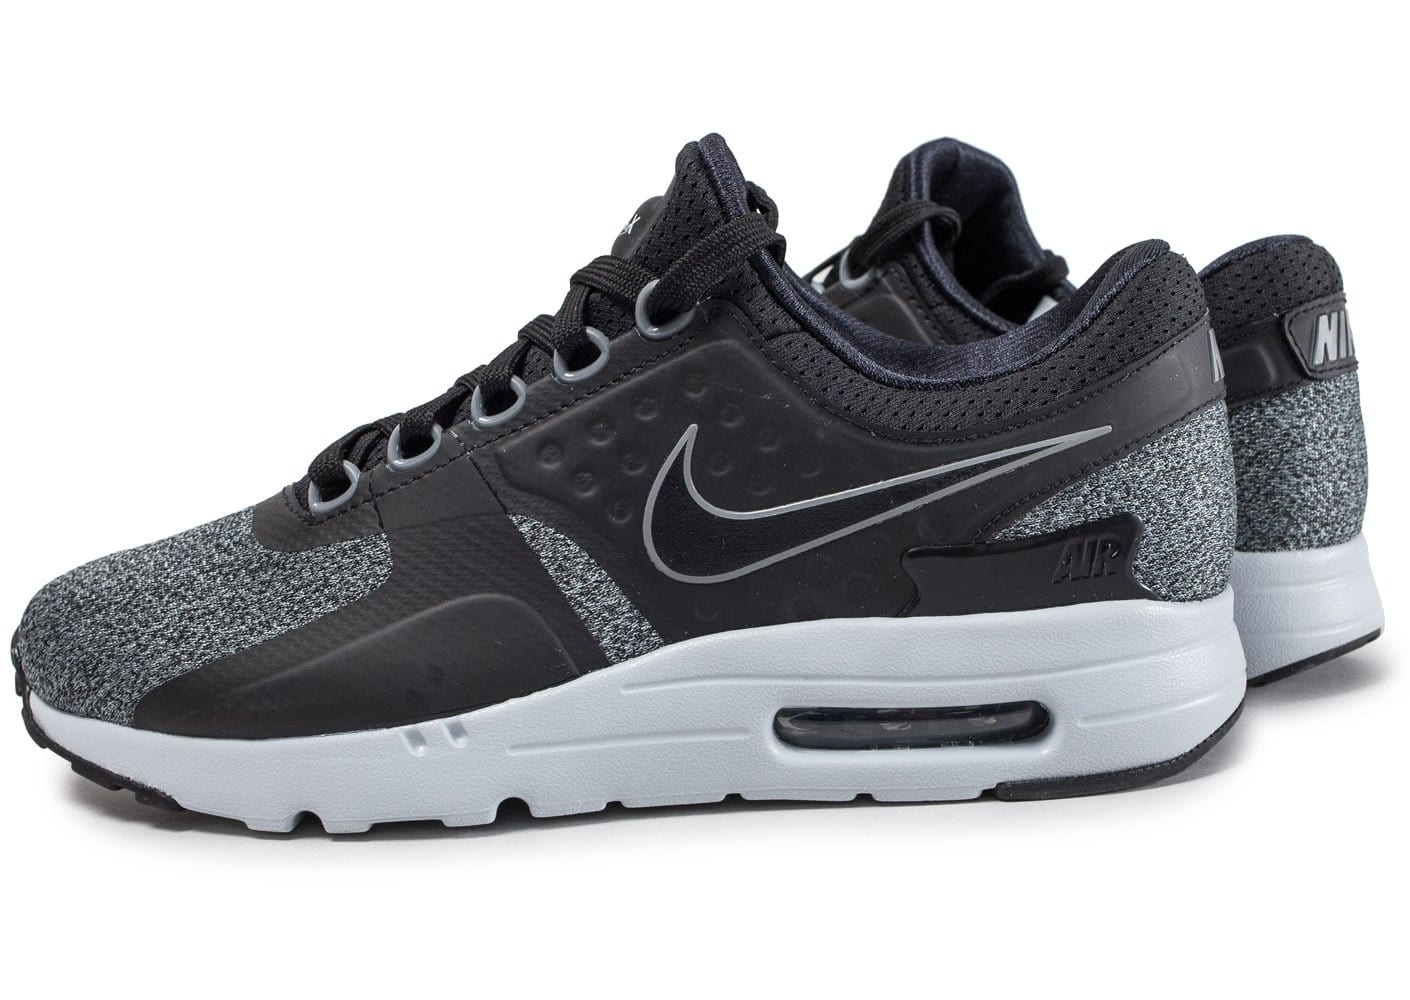 nike air max zero noire et grise chaussures homme chausport. Black Bedroom Furniture Sets. Home Design Ideas